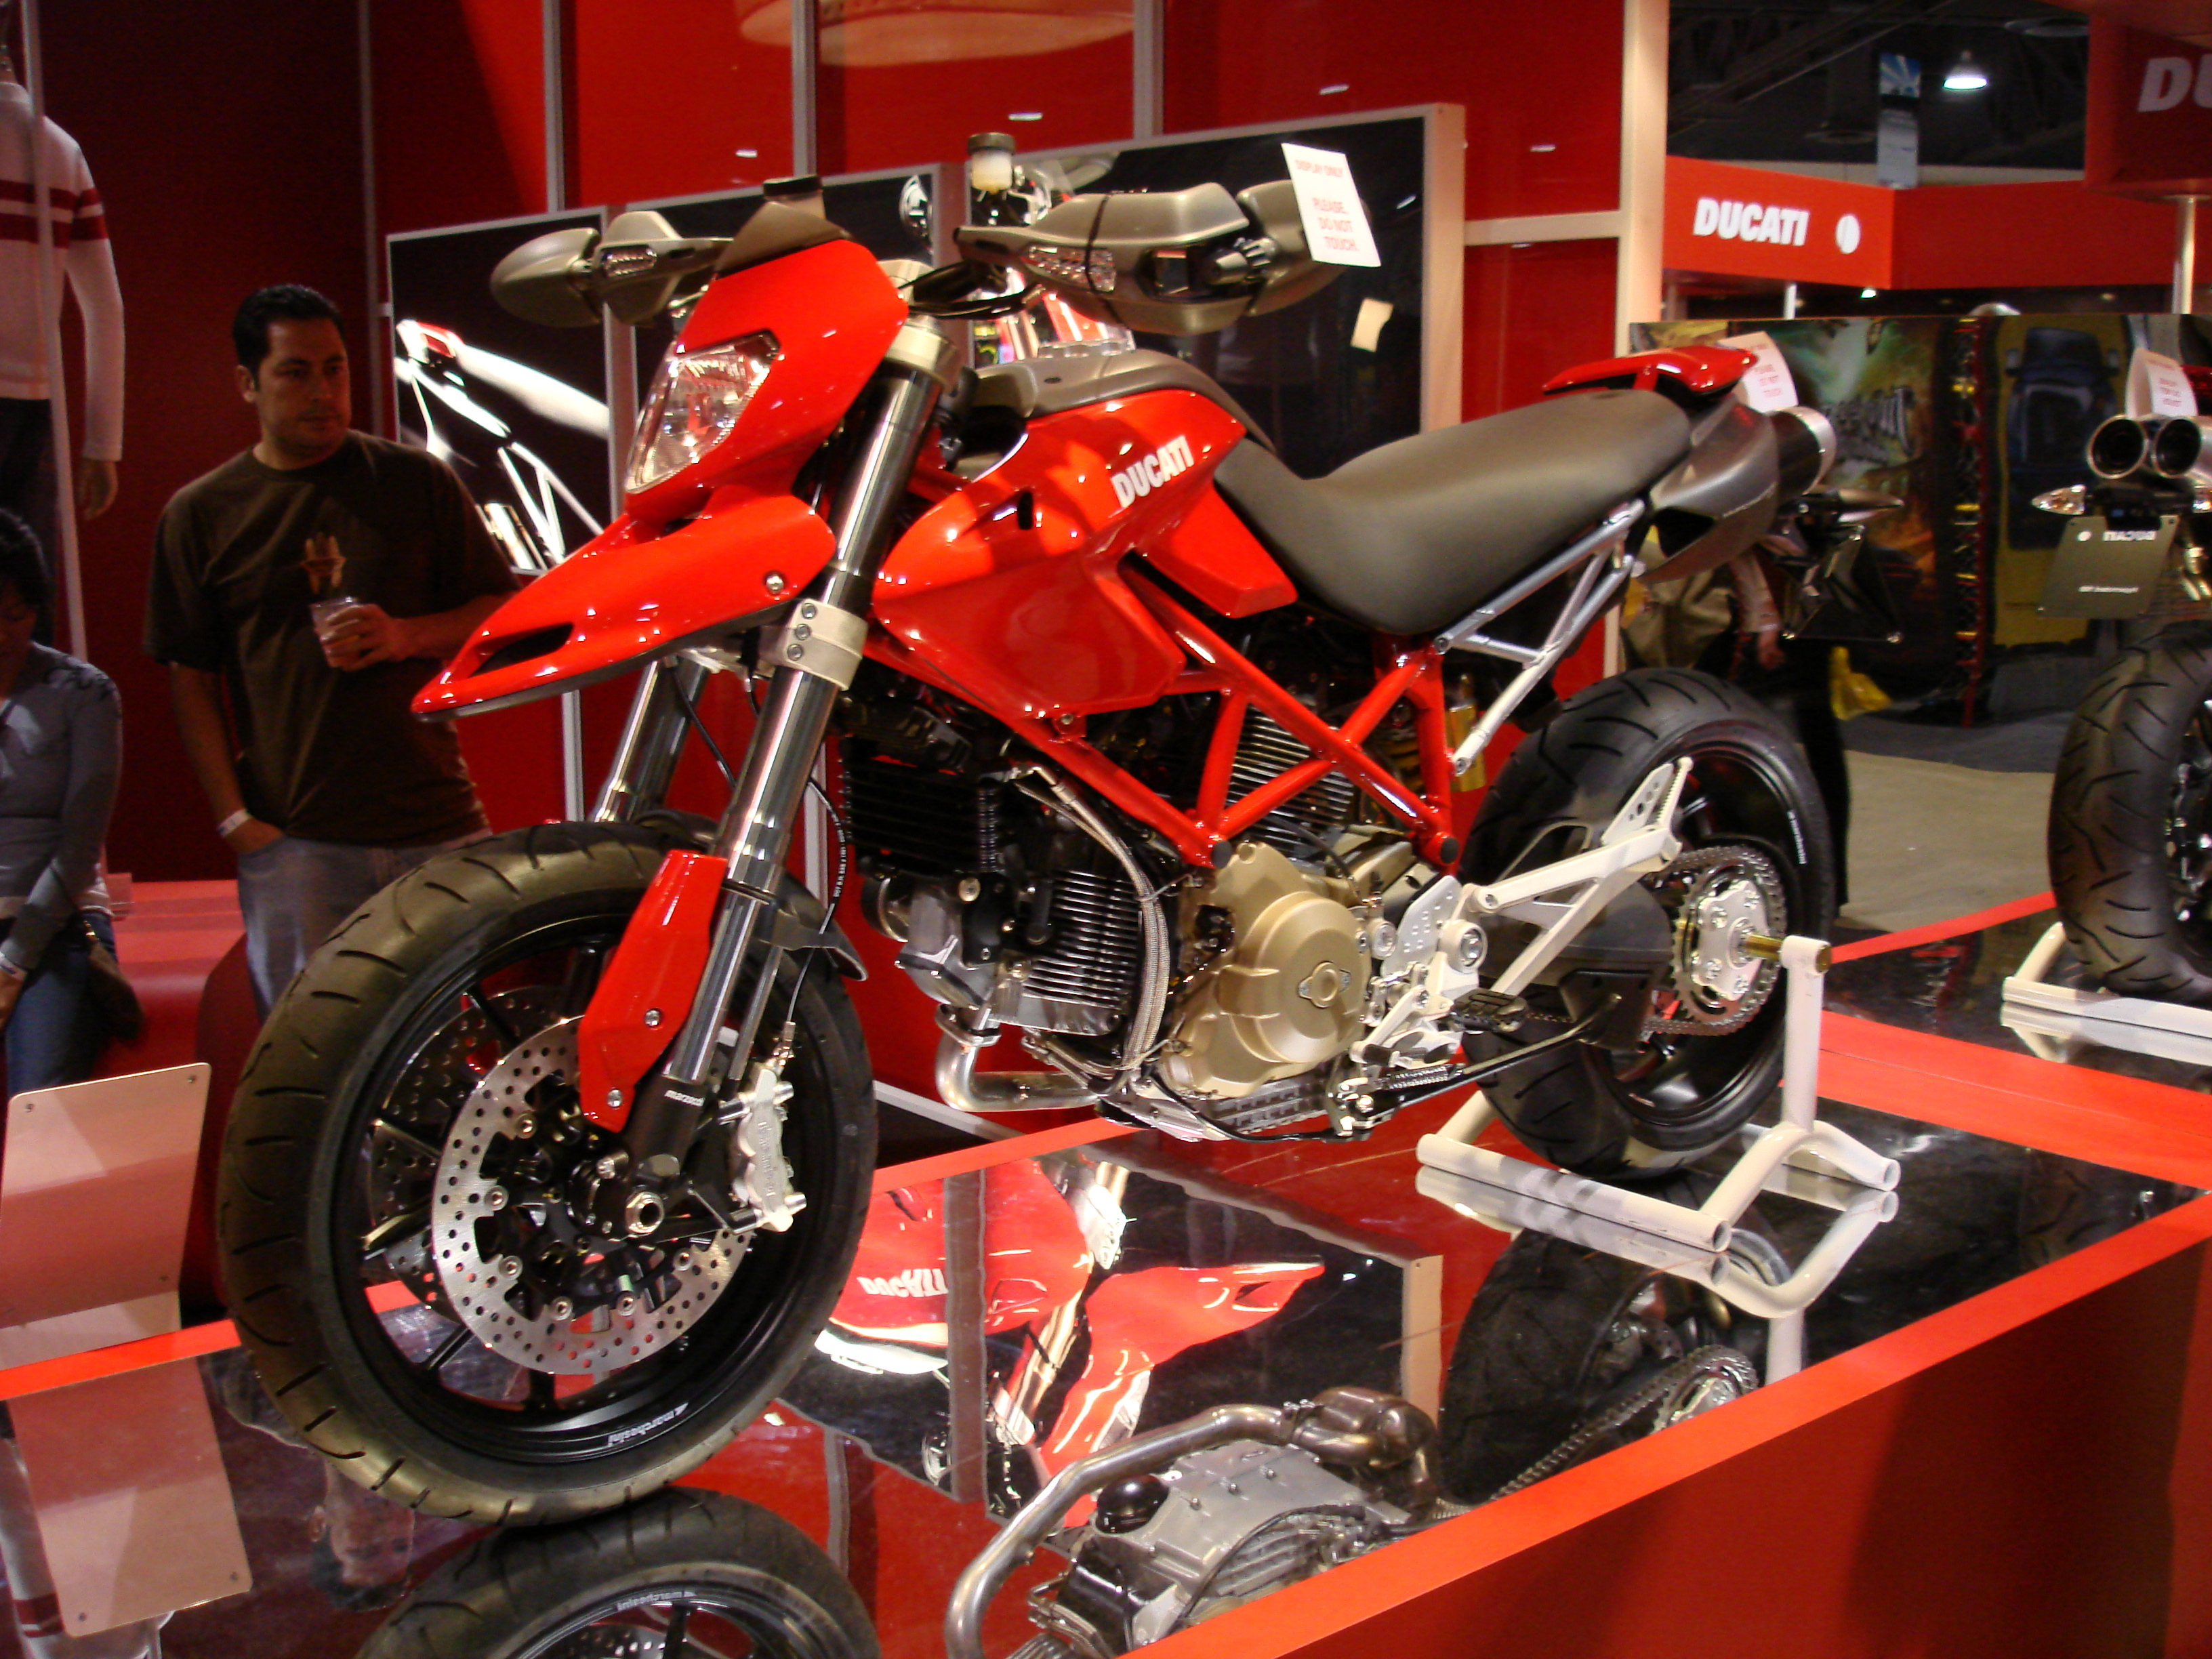 Ducati HM Hypermotard 2006 images #79417